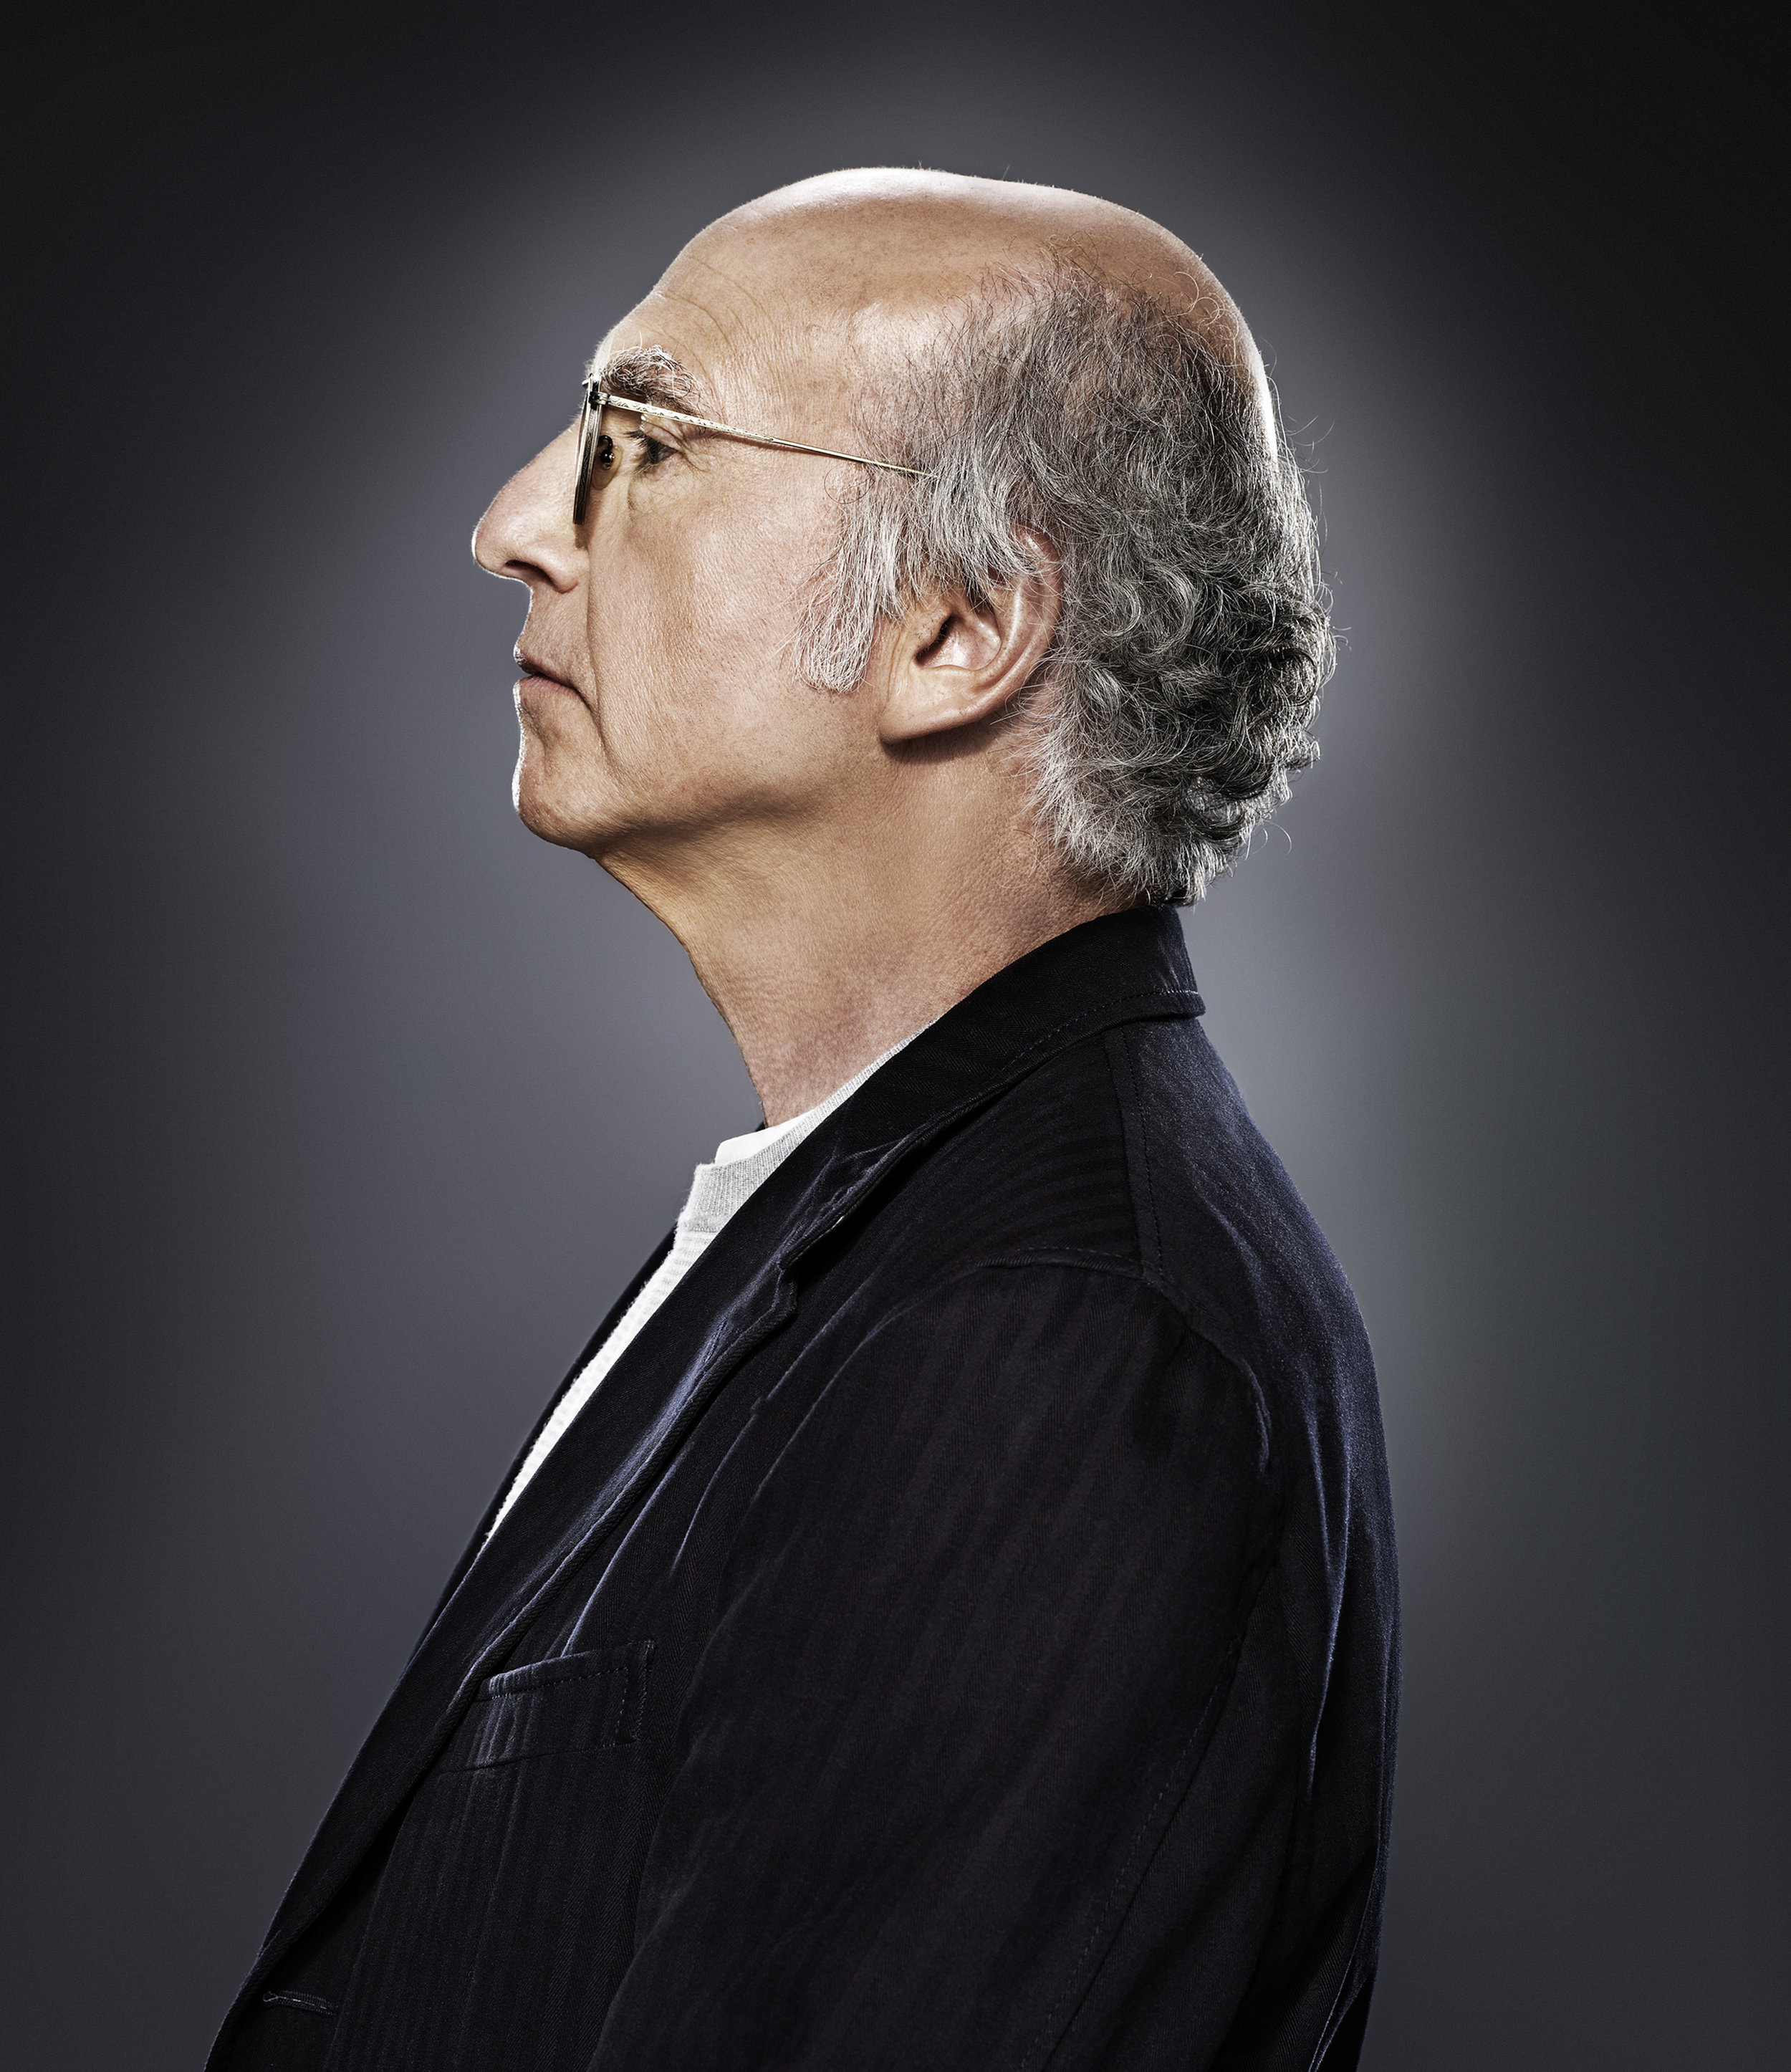 LarryDavid_Portrait_Port copy.jpg